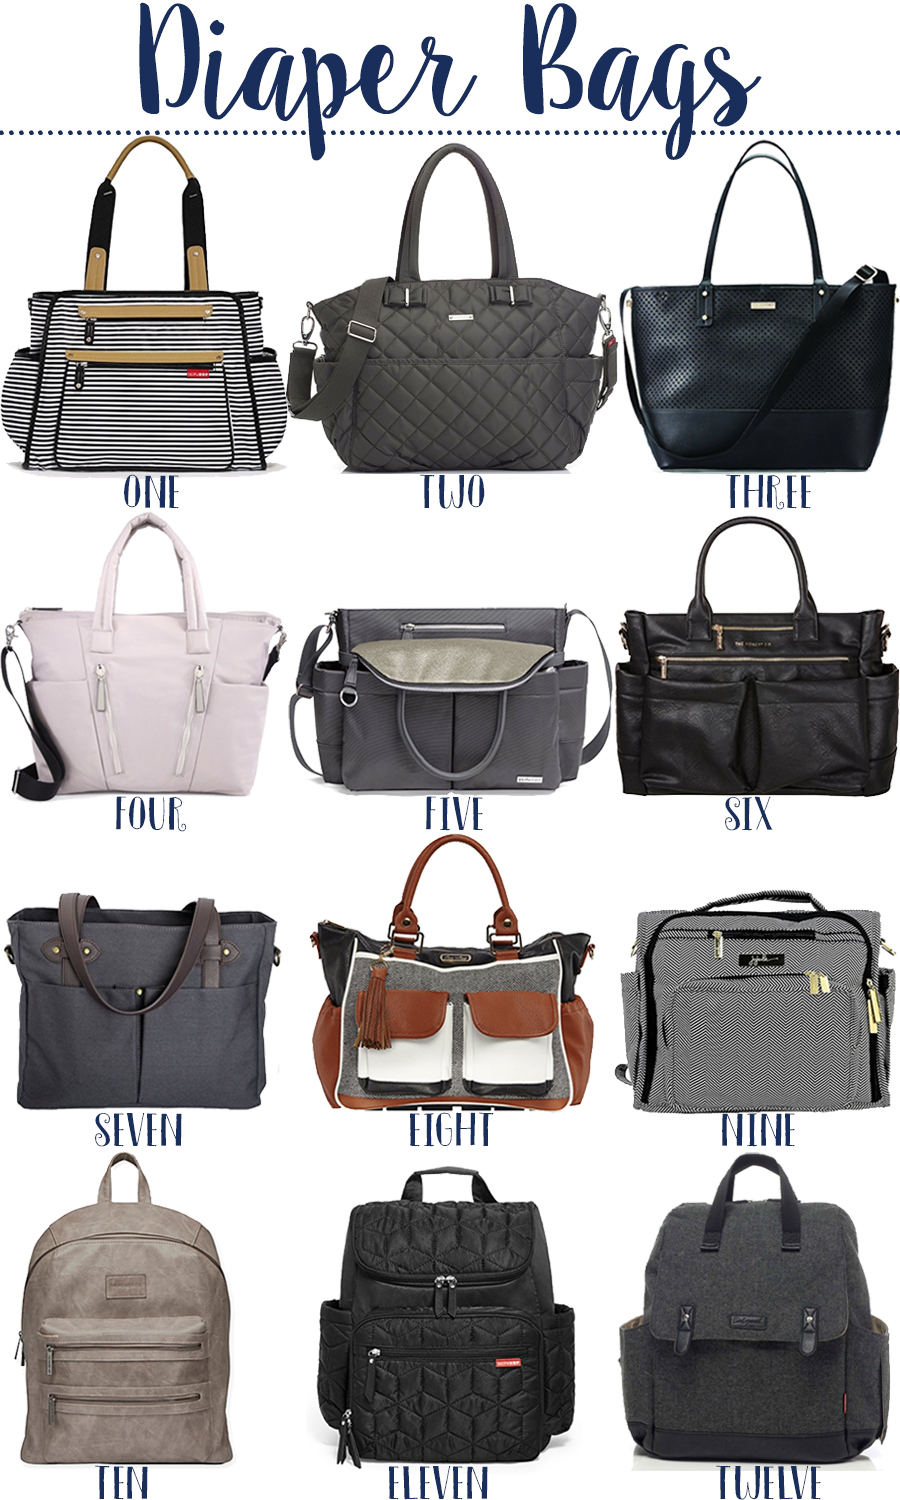 stylish diaper bags to fit every lifestyle and budget